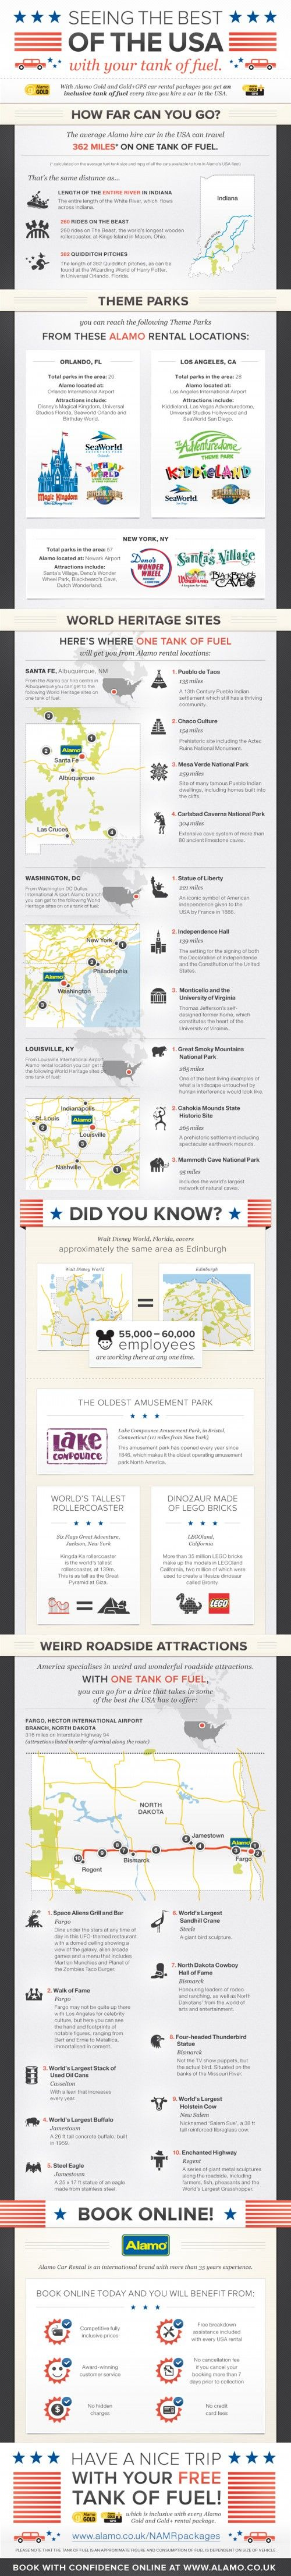 It would be great fun to go on a road trip around the US. This infographic looks at the take from Alamo car rental on what you can see in one of their cars. They estimate that 362 miles can be achieved on one tank of fuel. That's quite a distance. But do you have to refill to get back? If you're going to the Carlsbad Caverns National Park, which is 304 miles away from the nearest Alamo depot then yes. Technically two tanks then, the scoundrels.